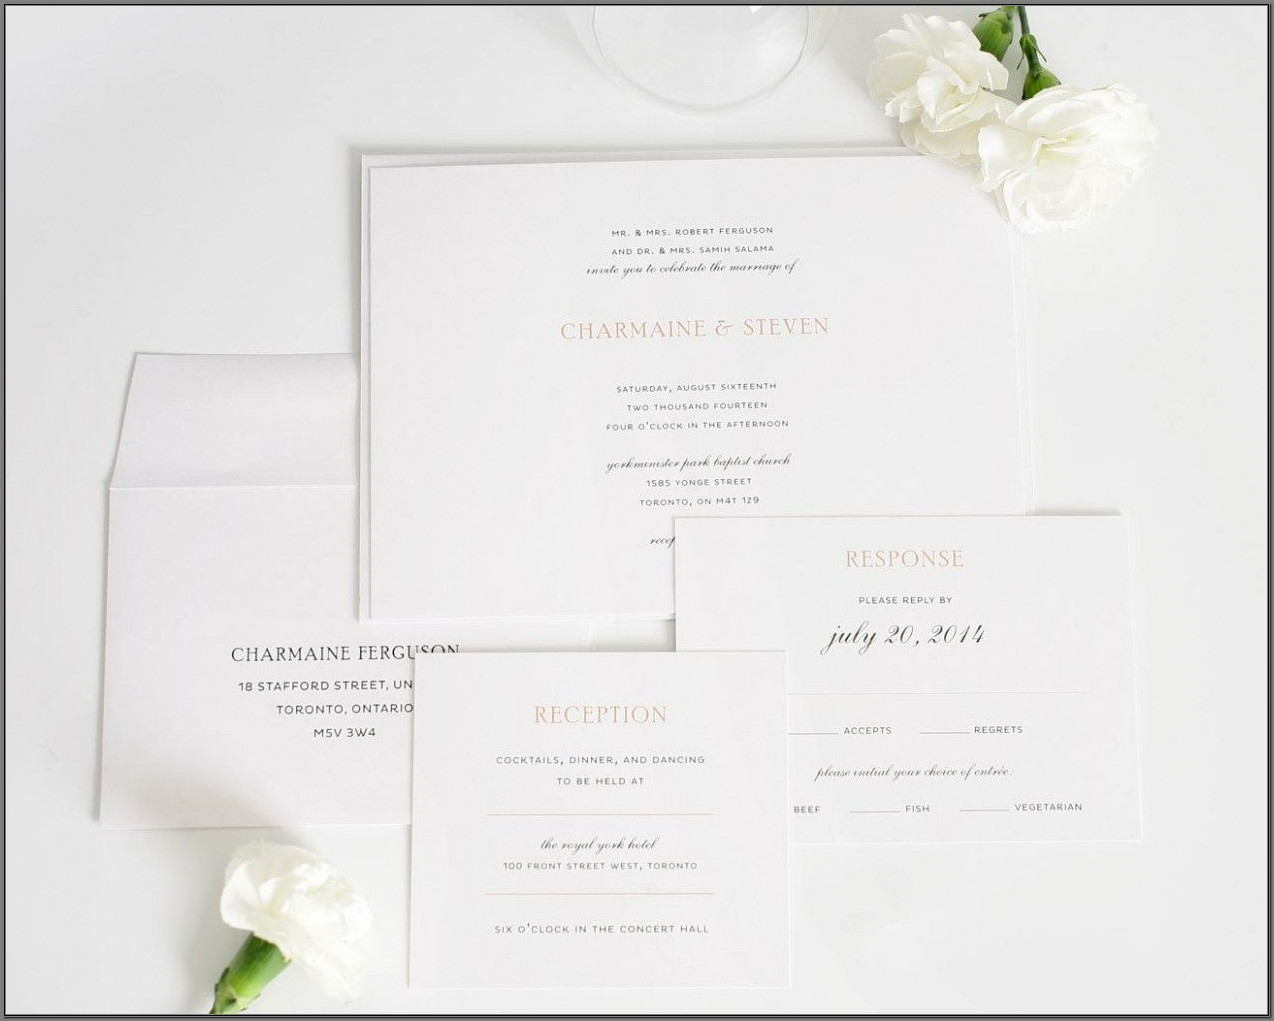 Elegant Wedding Invitations With Photo